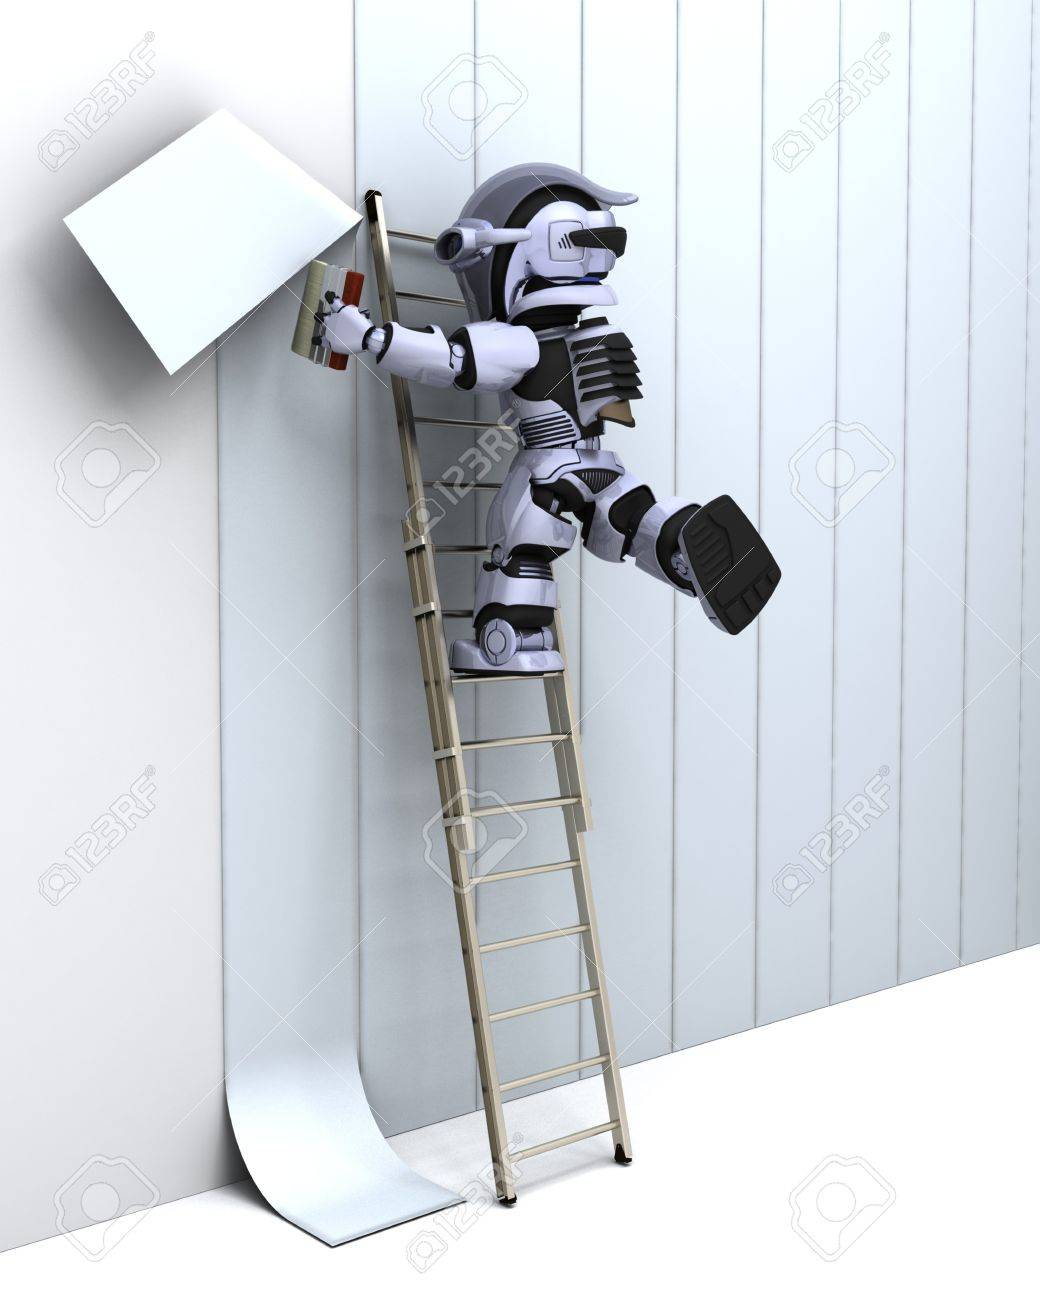 3D render of robot decorating a wall Stock Photo - 7862804